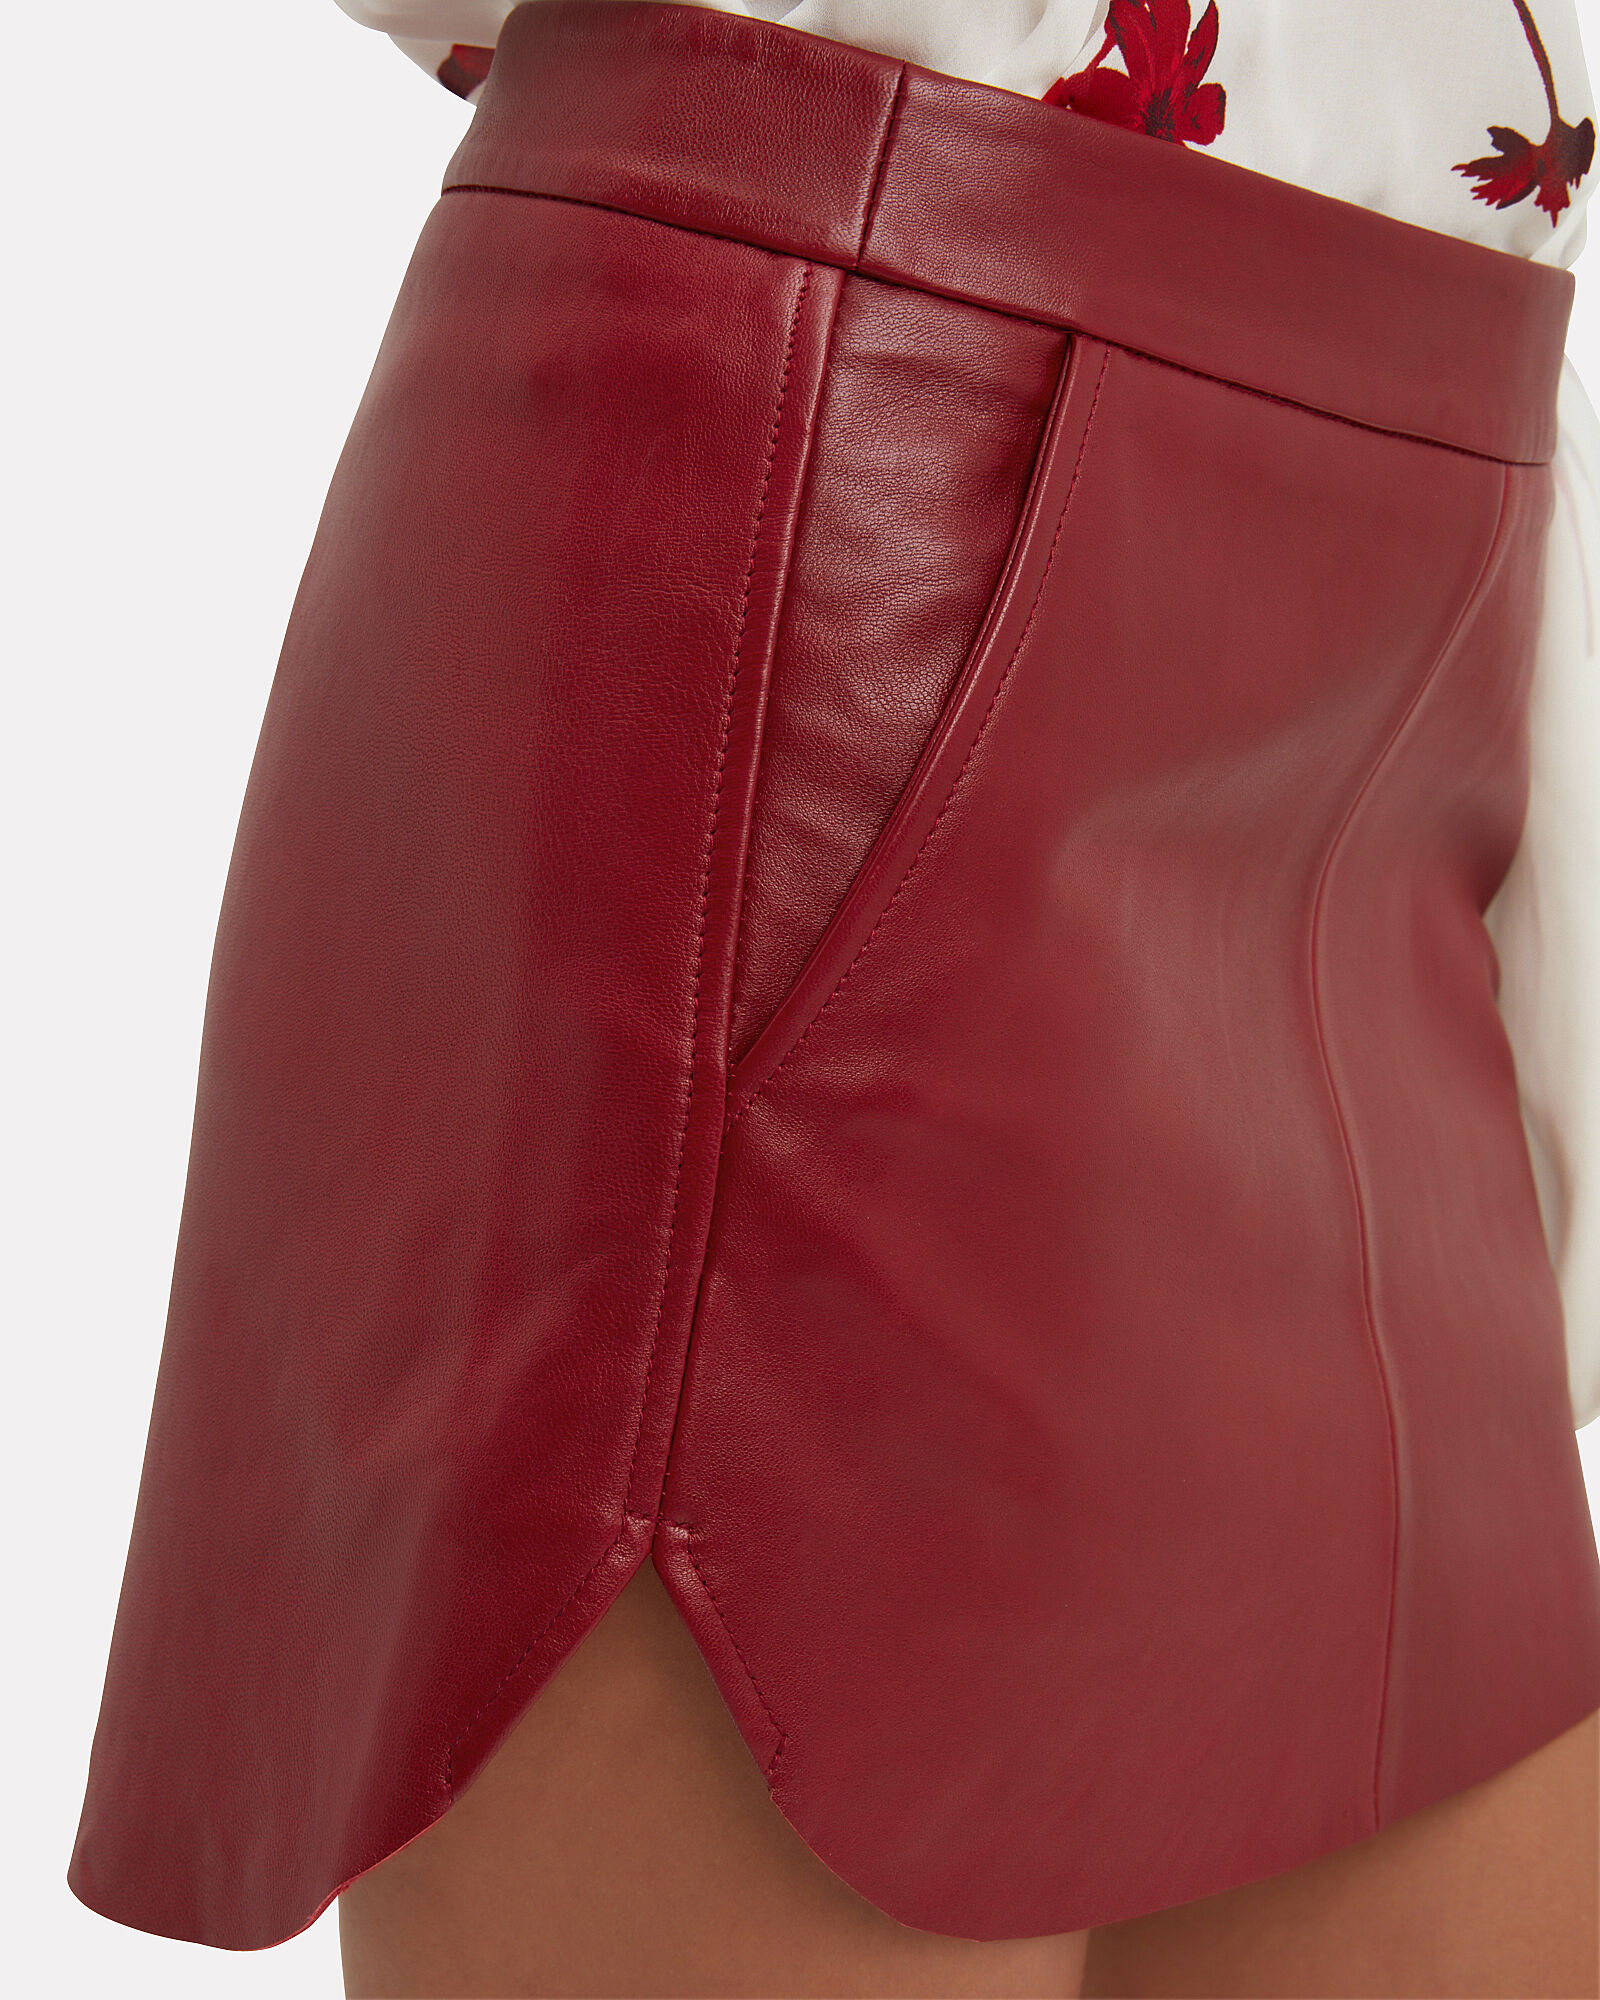 Baseball Hem Red Leather Mini Skirt, RED, hi-res